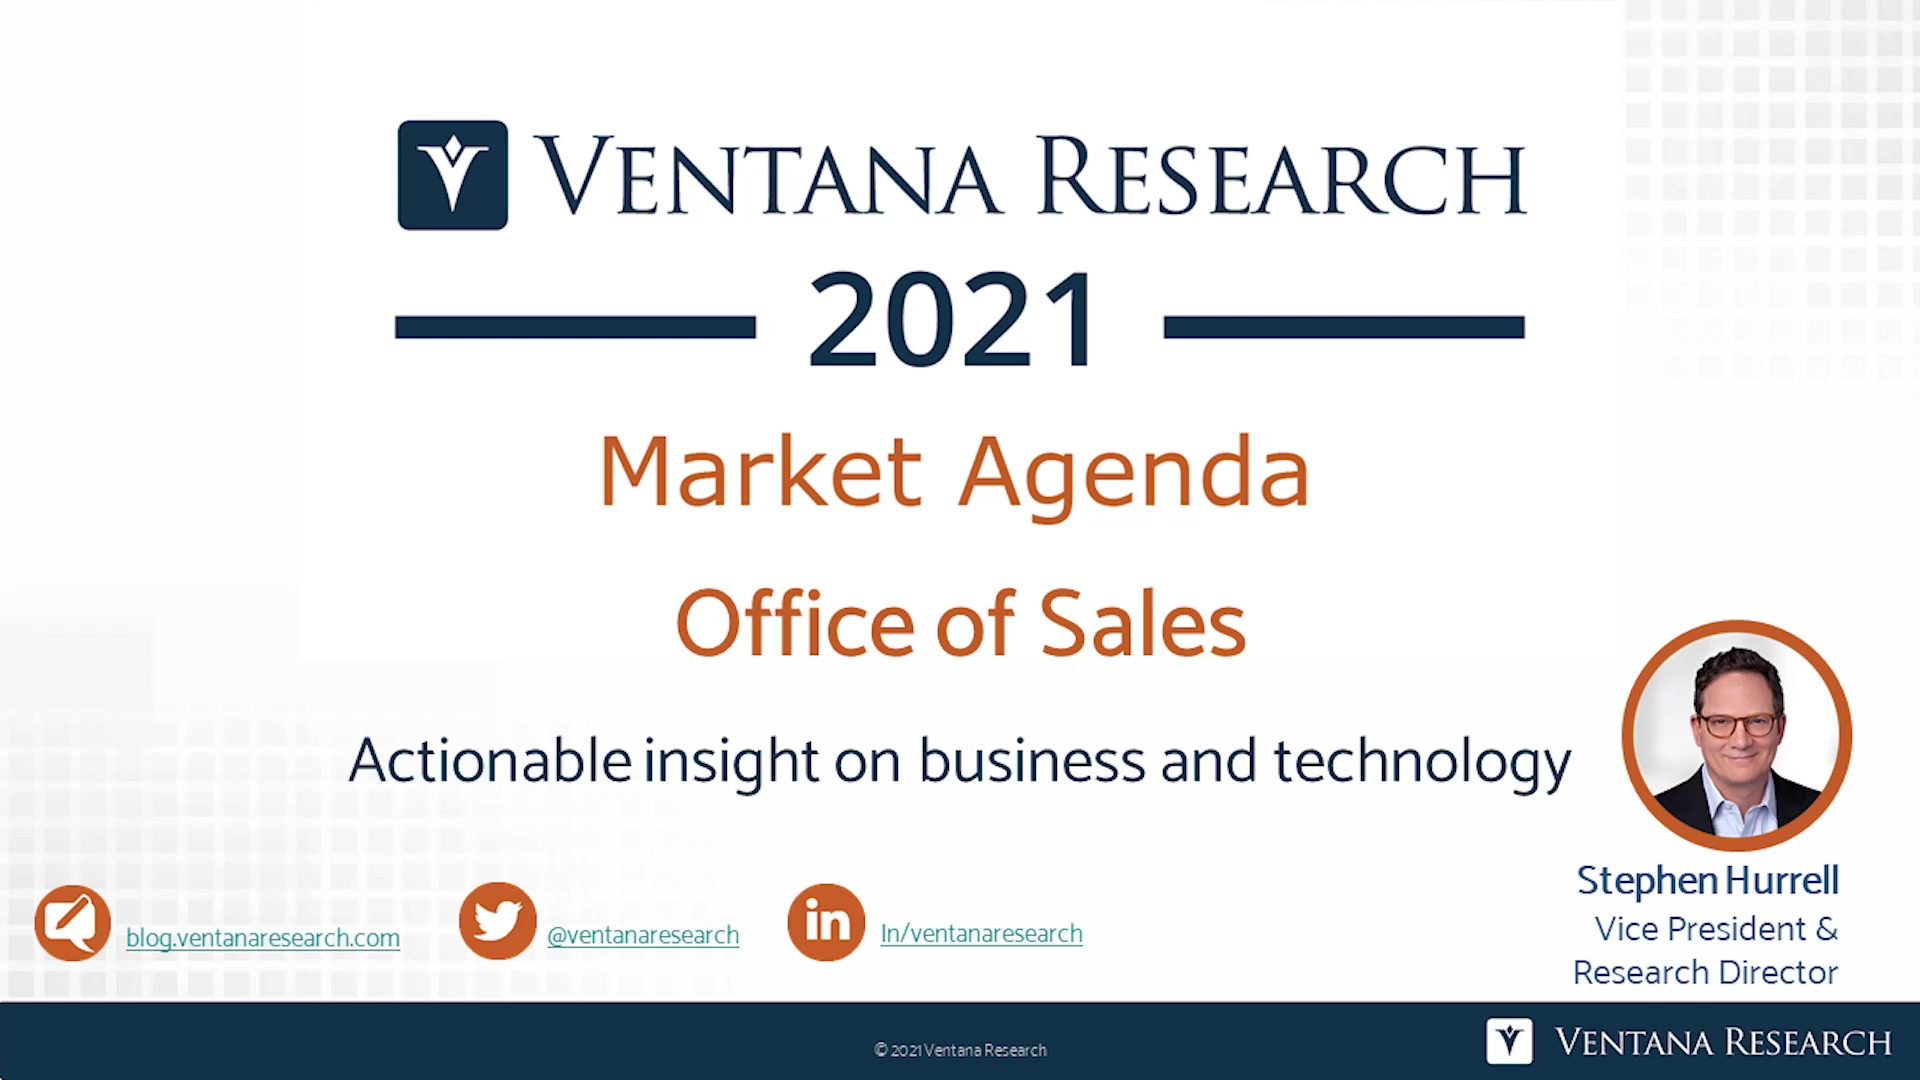 Ventana Research 2021 Market Agenda for Office of Sales